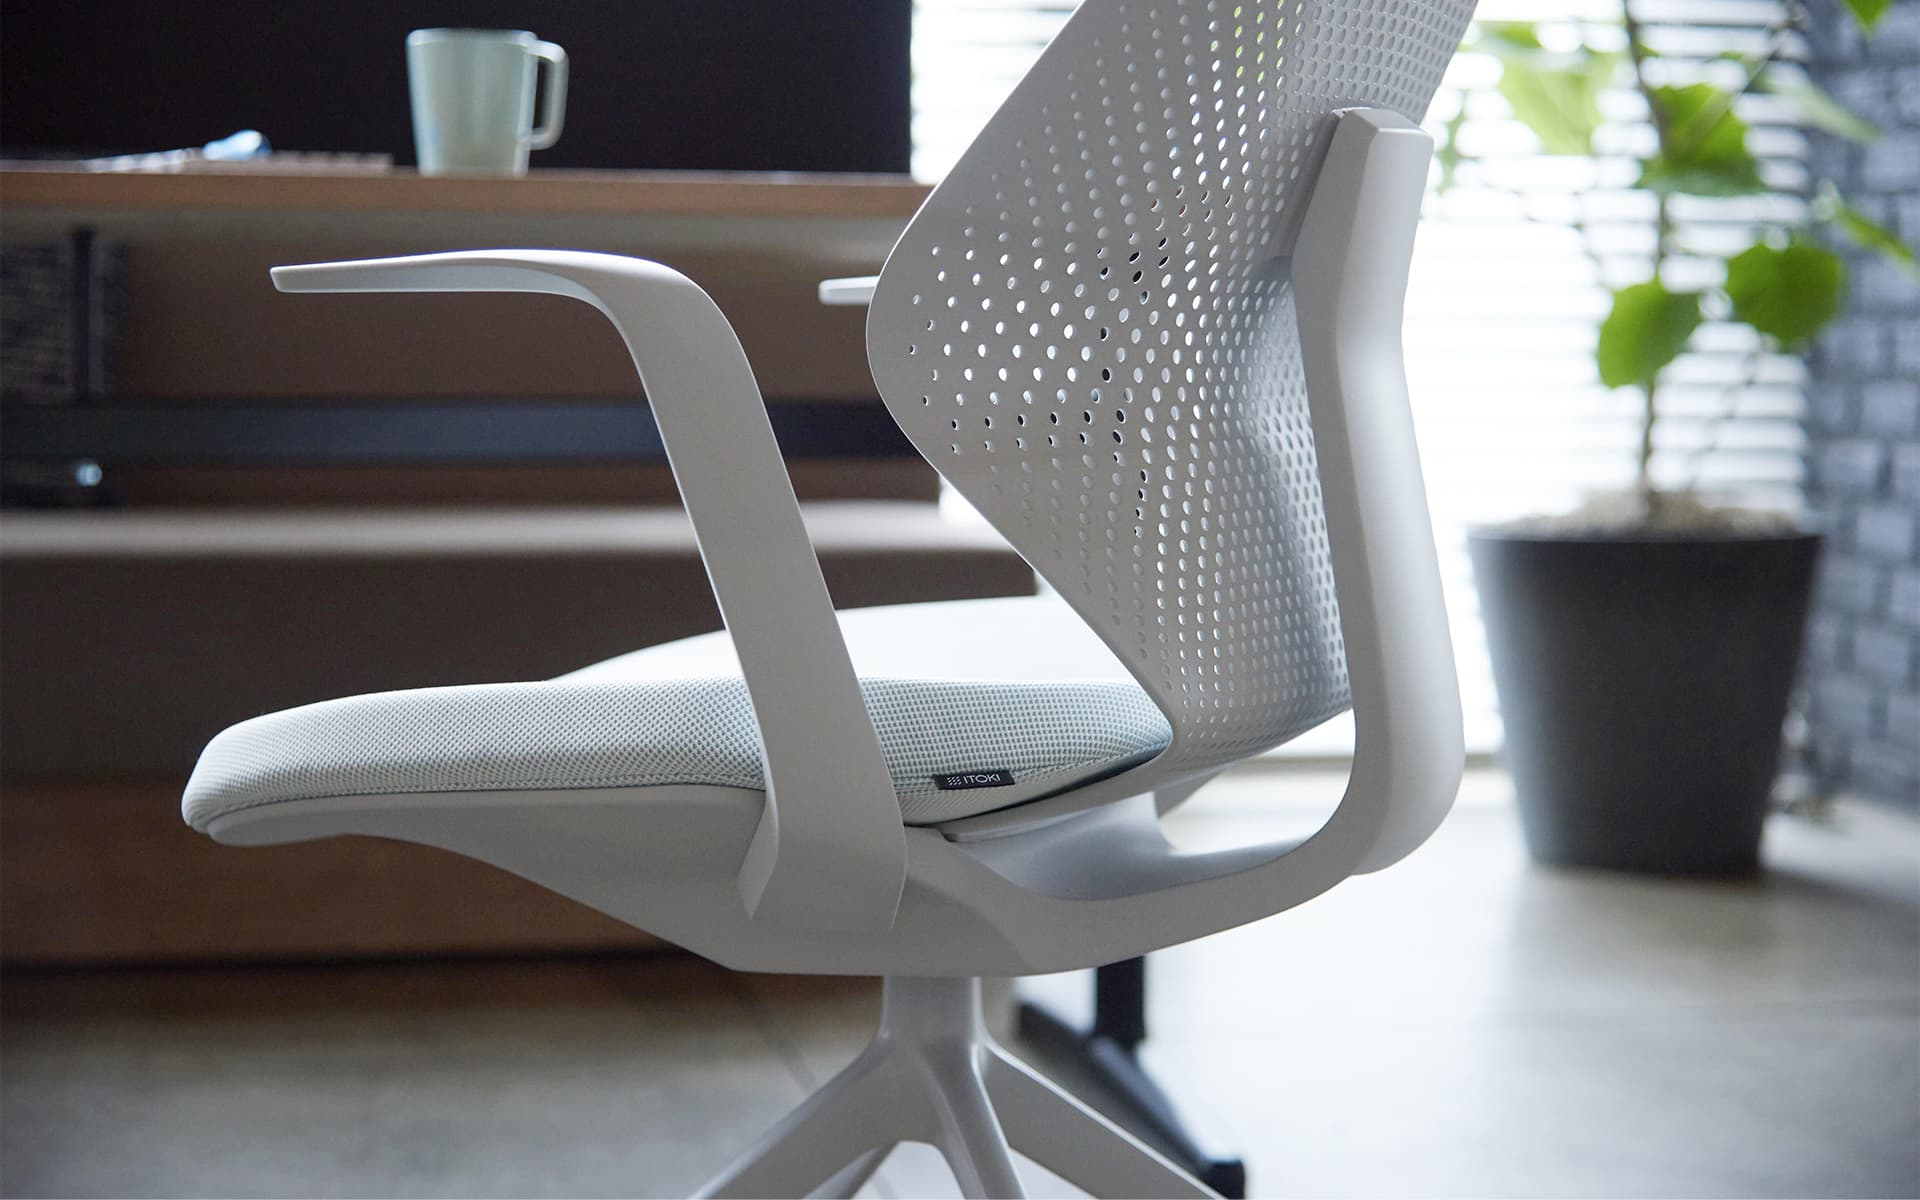 A white ITOKI QuA office chair by ITO Design in front of a natural wood desk with mug